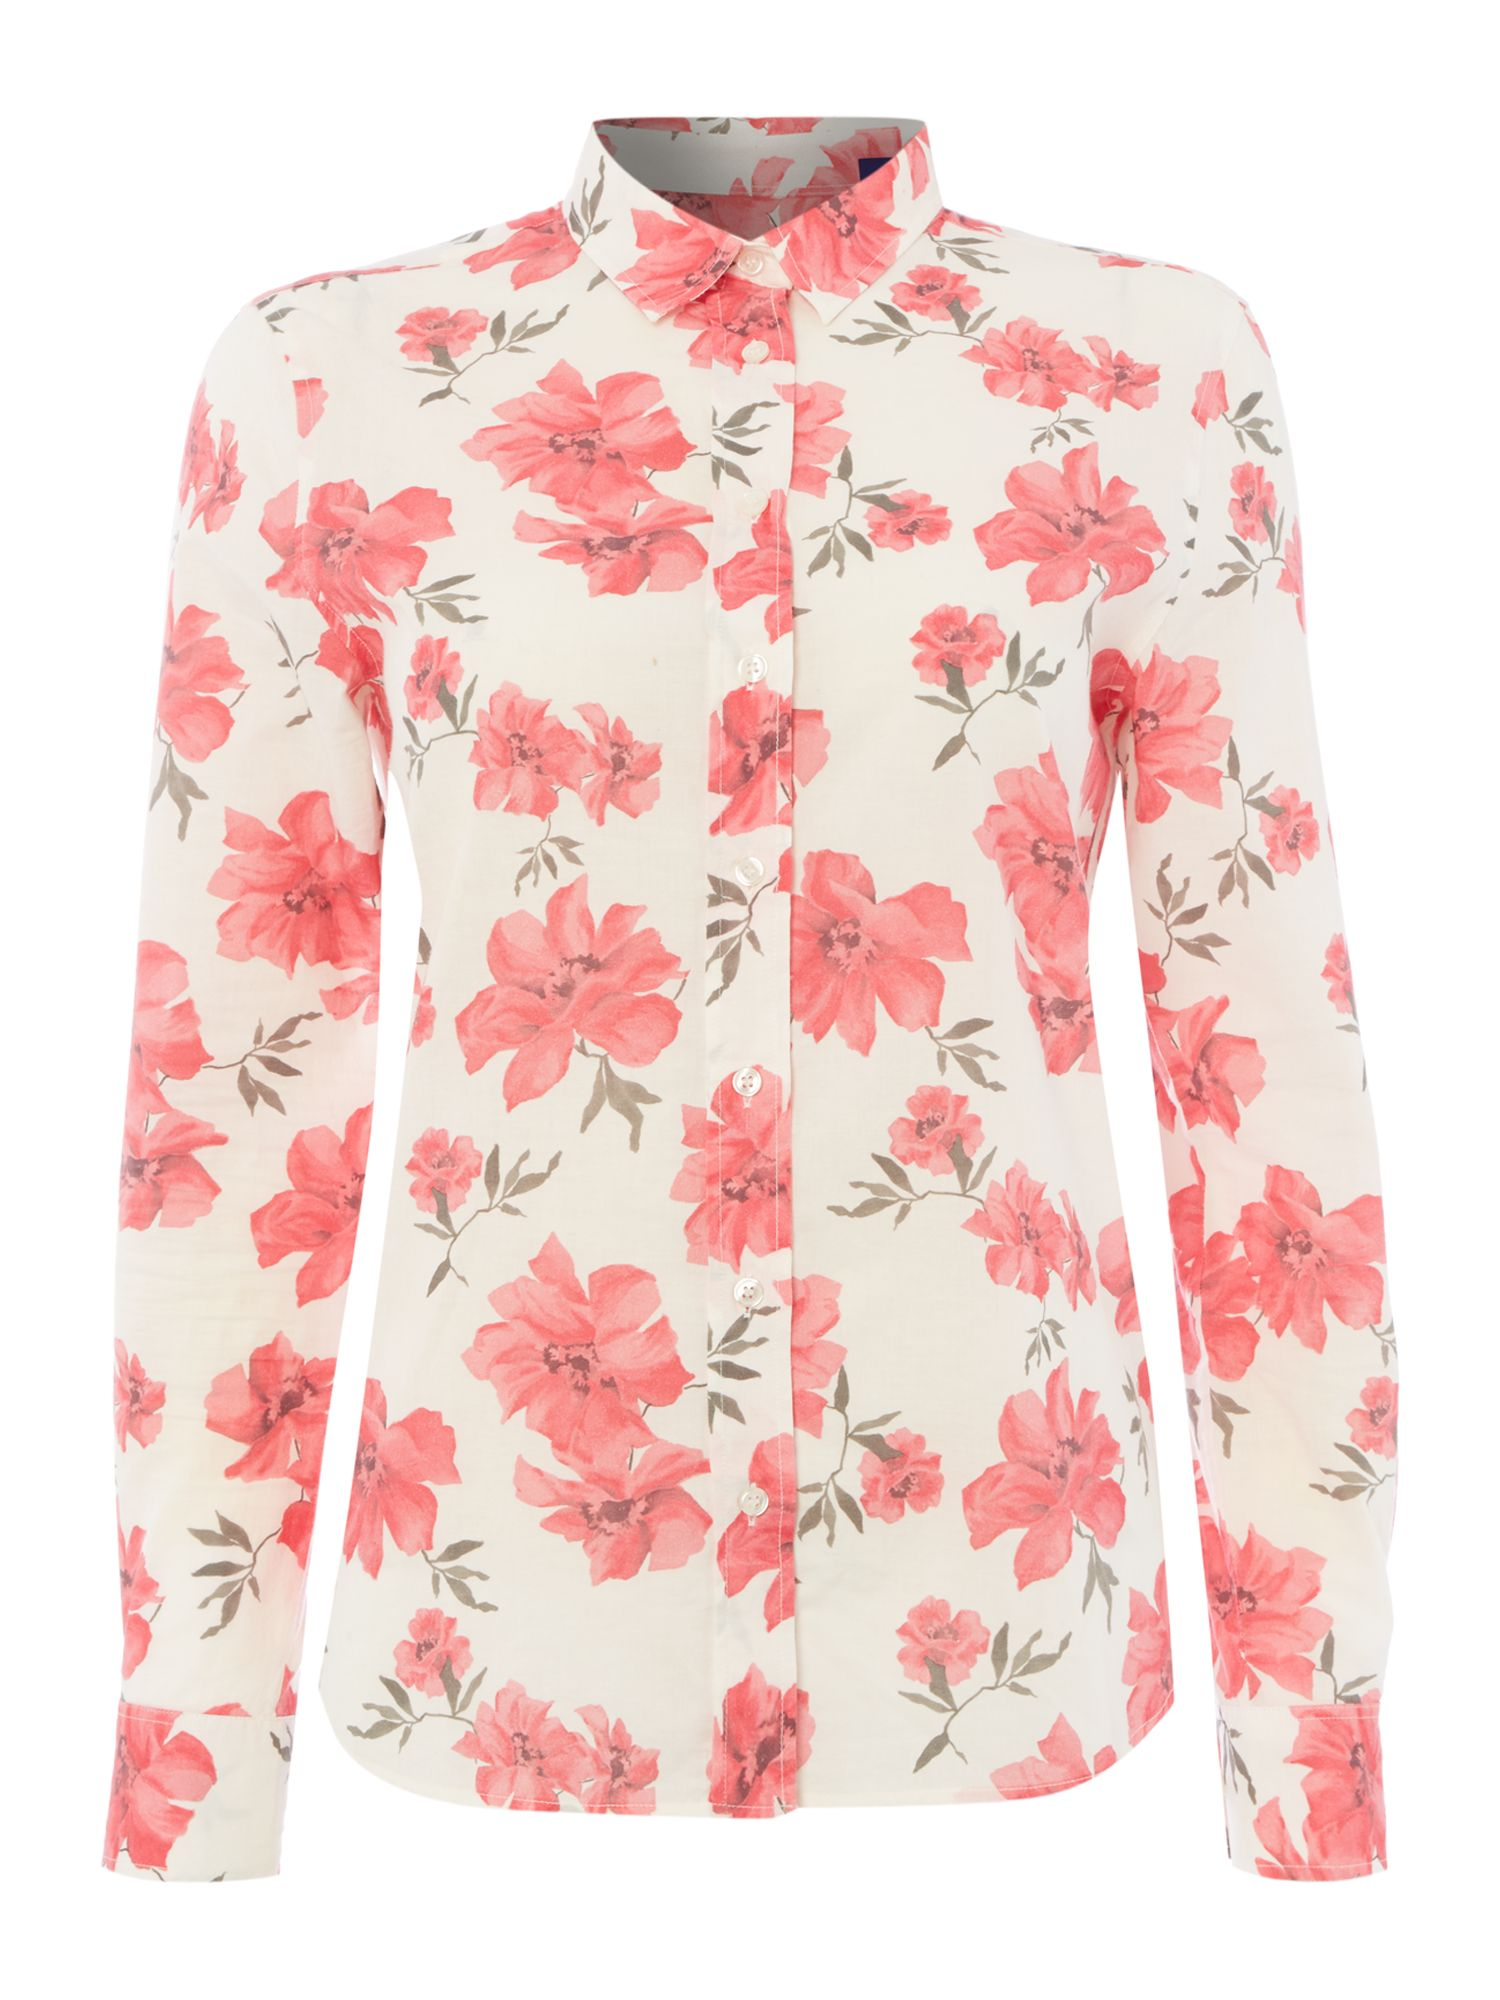 Gant Island flower shirt, Multi-Coloured